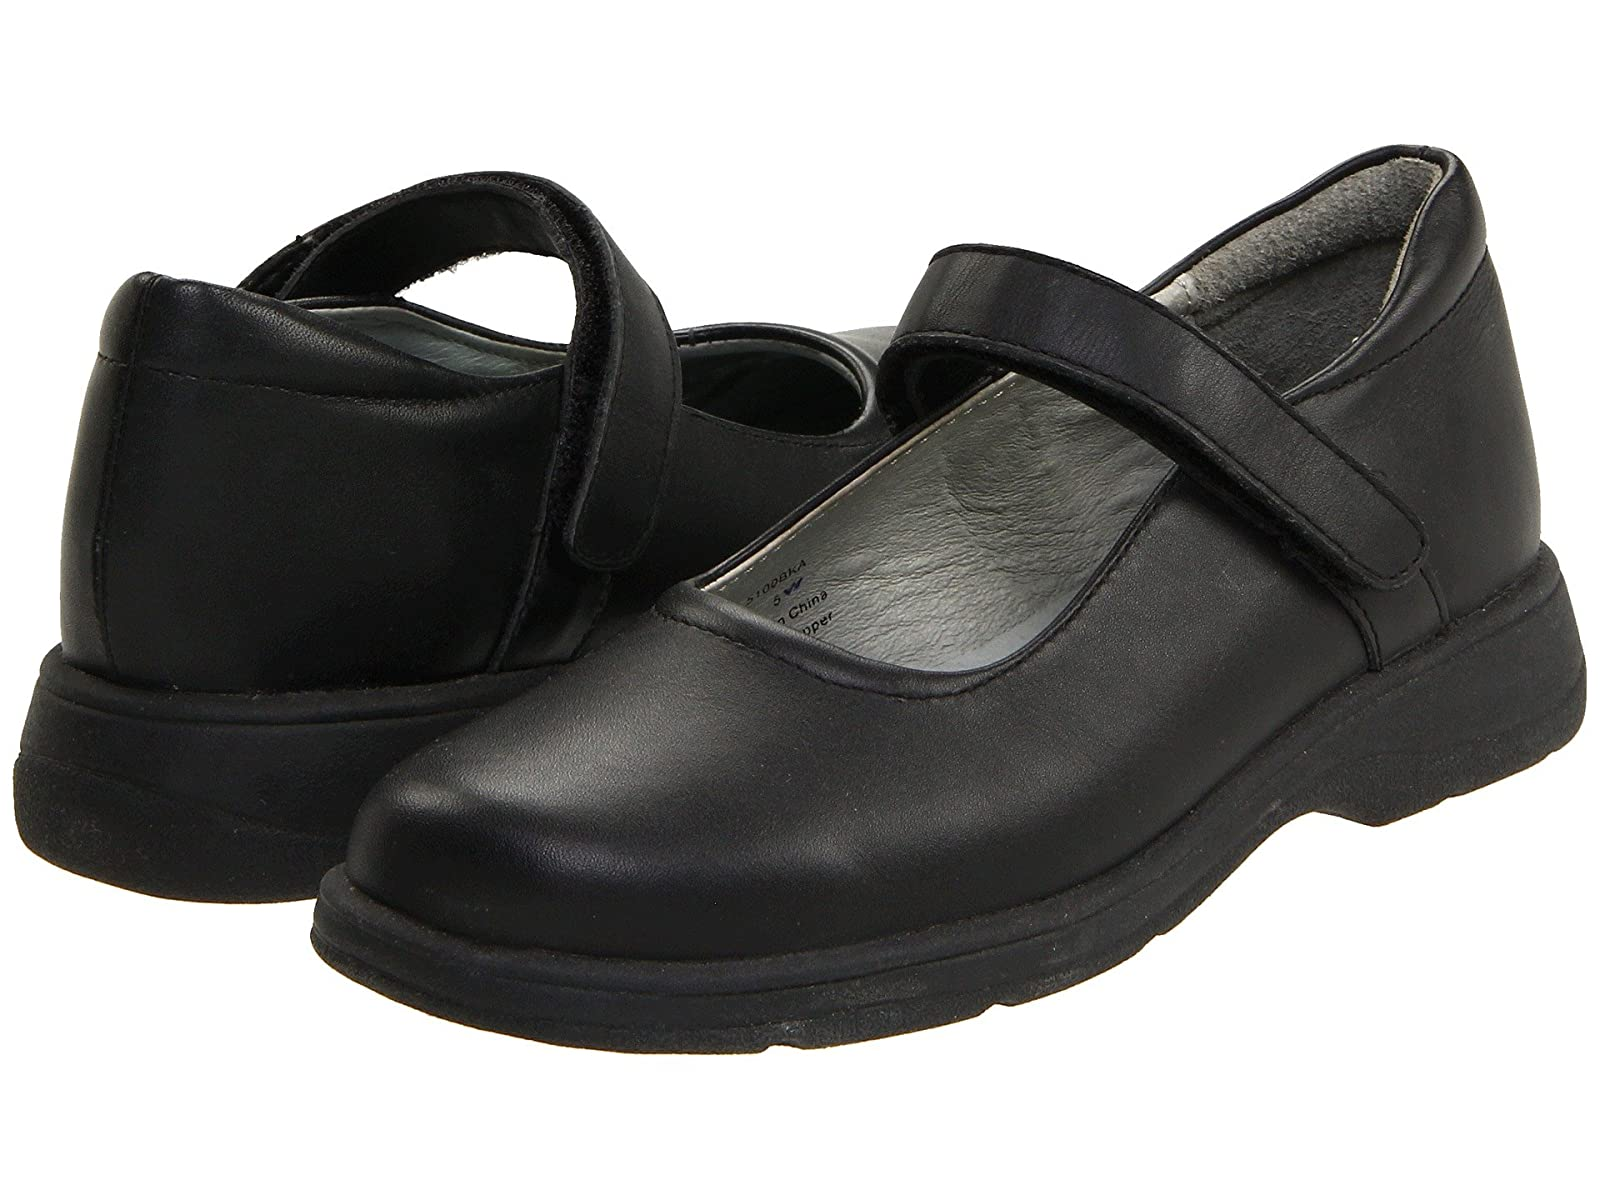 School Issue Prodigy (Adult)Atmospheric grades have affordable shoes